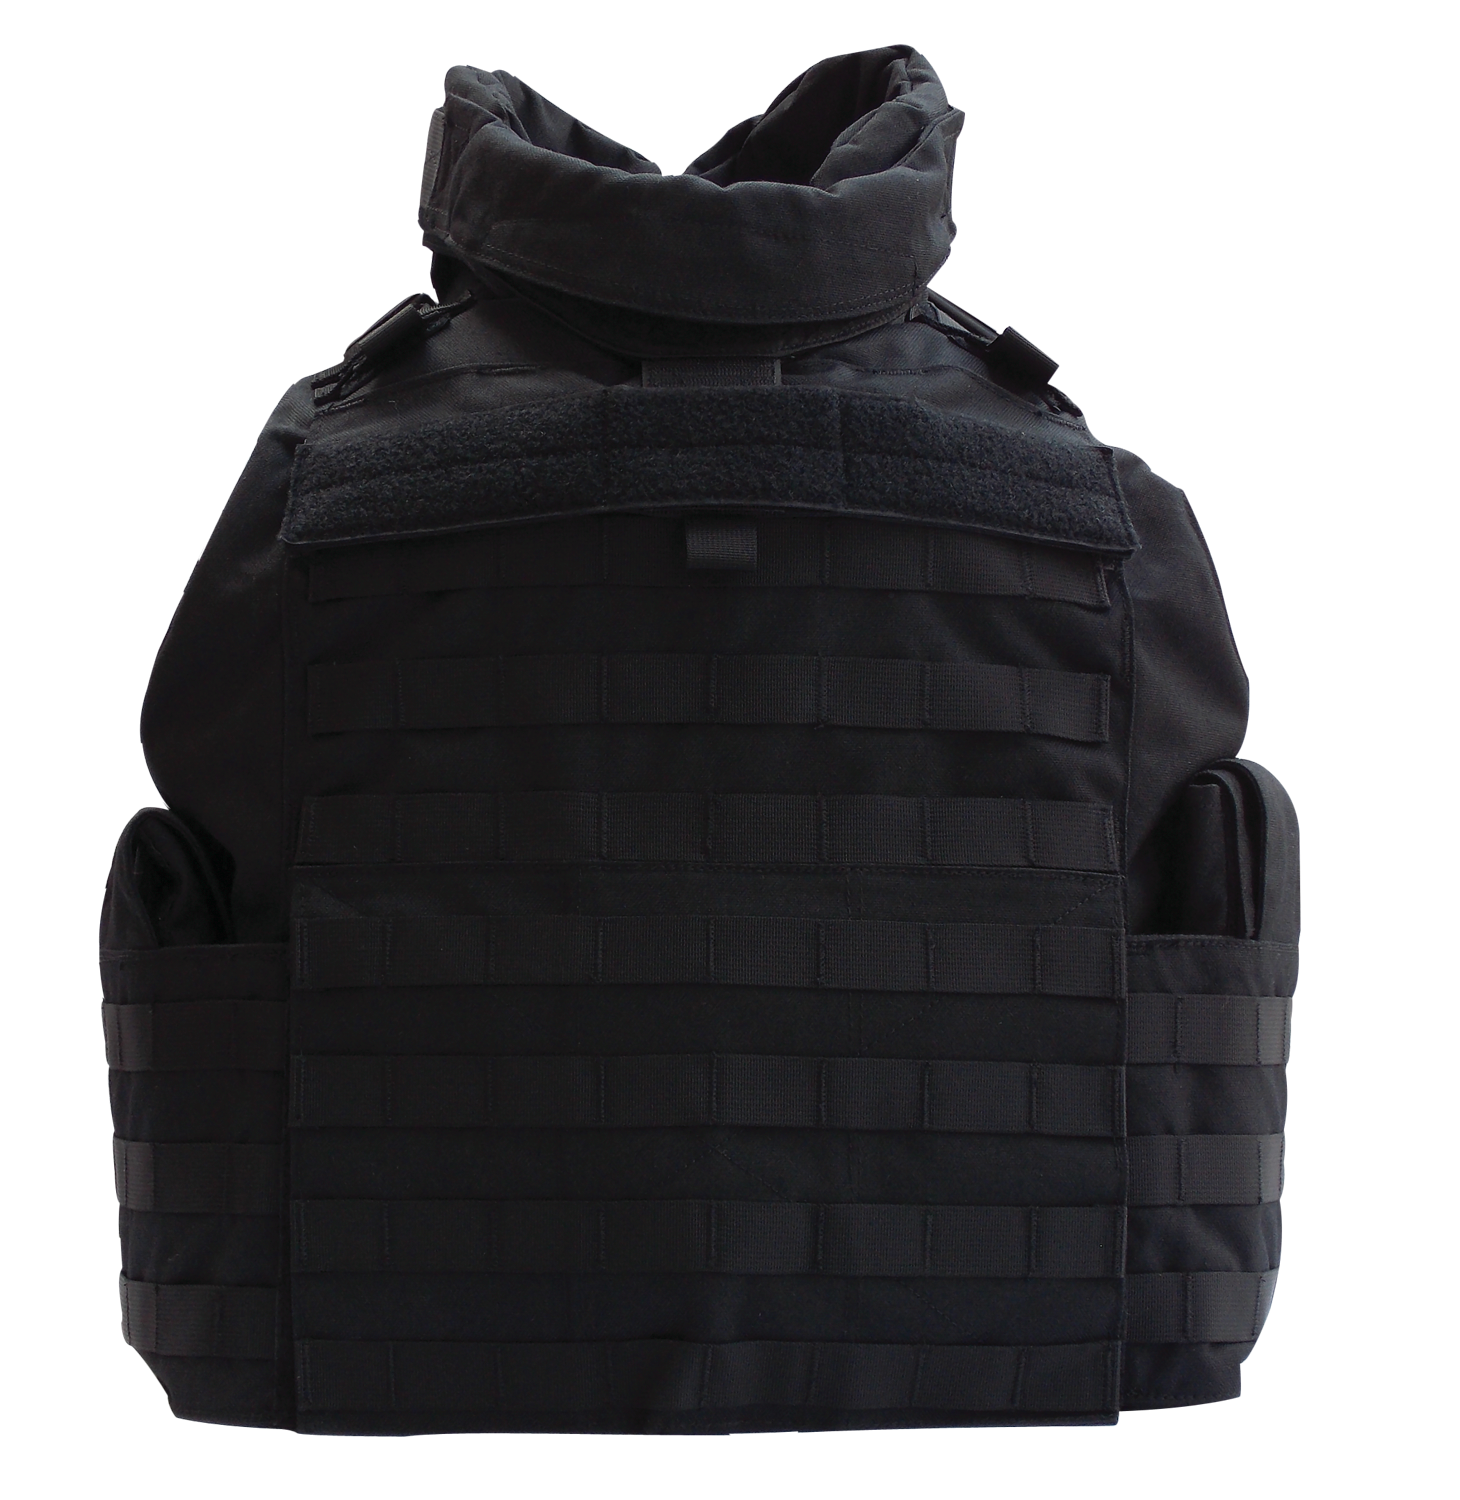 Tacprogear V-CMTV1 Commercial Tactical Vest Large Nylon Black